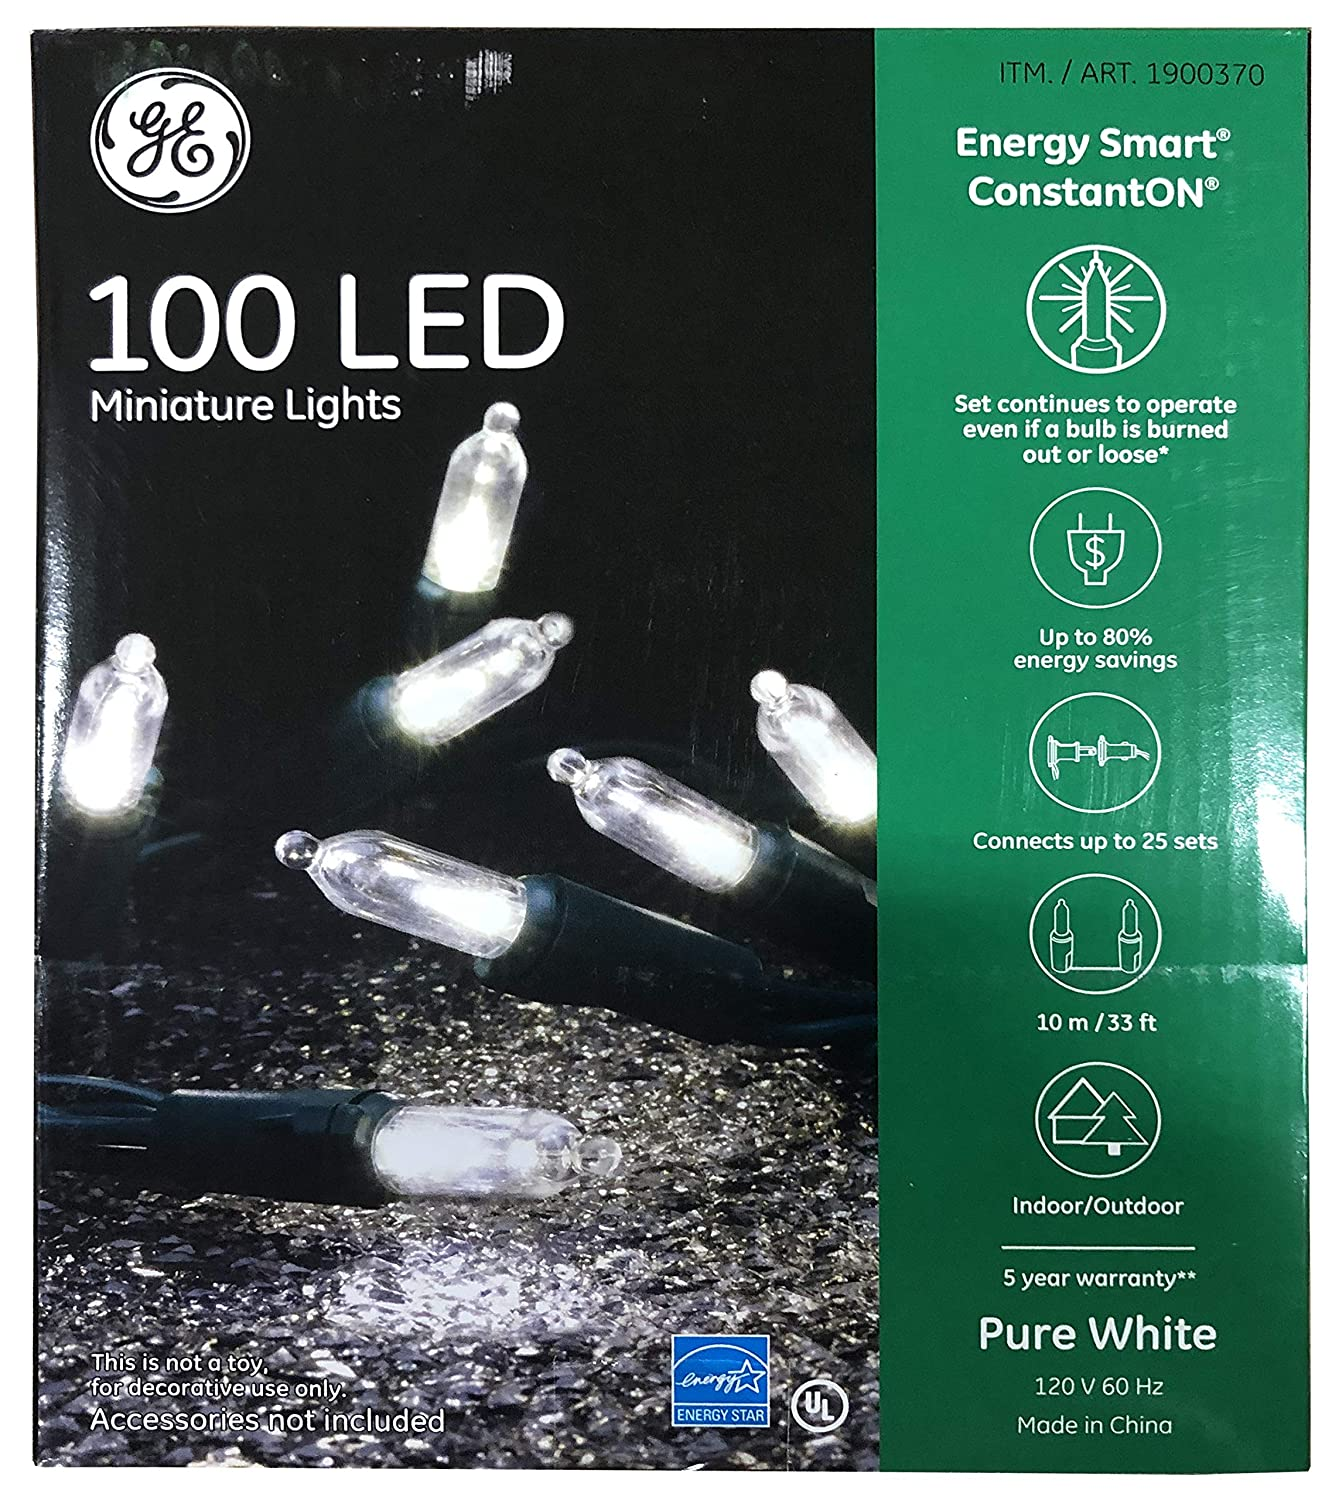 GE Energy Smart Colorite Miniature LED 100-Light Set Holiday, Party, Christmas - Pure White